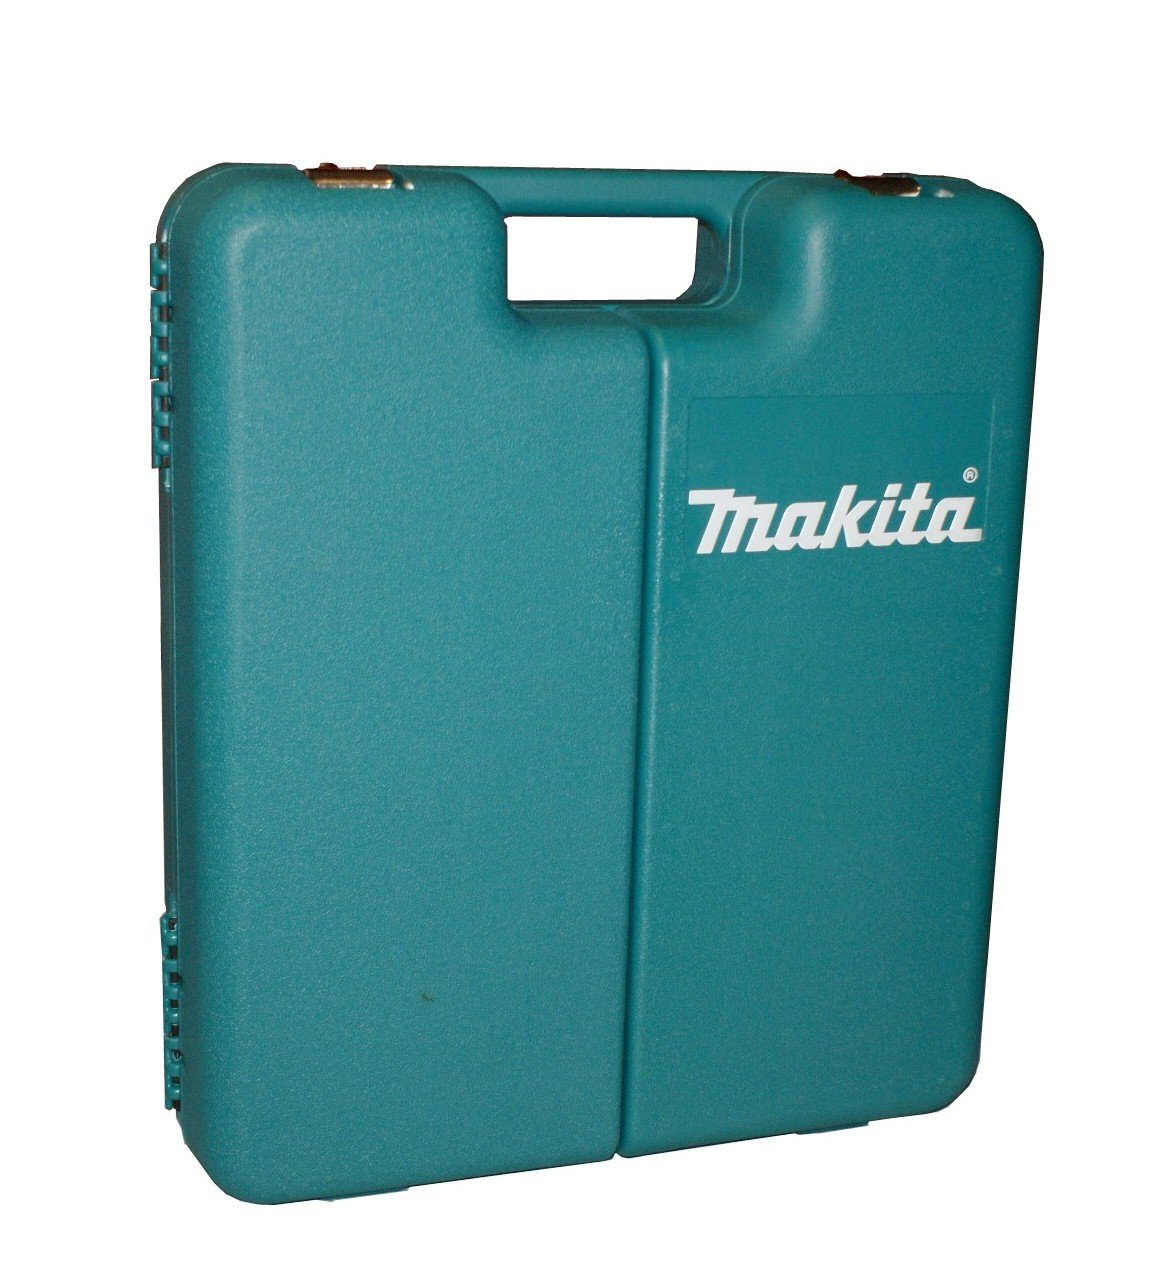 MAKITA 252 PIECE ACCESSORY KIT IN BLOW MOULDED CASE SCREWDRIVER, DRILLBITS GREAT FOR BUILDERS,TRADE,DIY by Makita (Image #6)